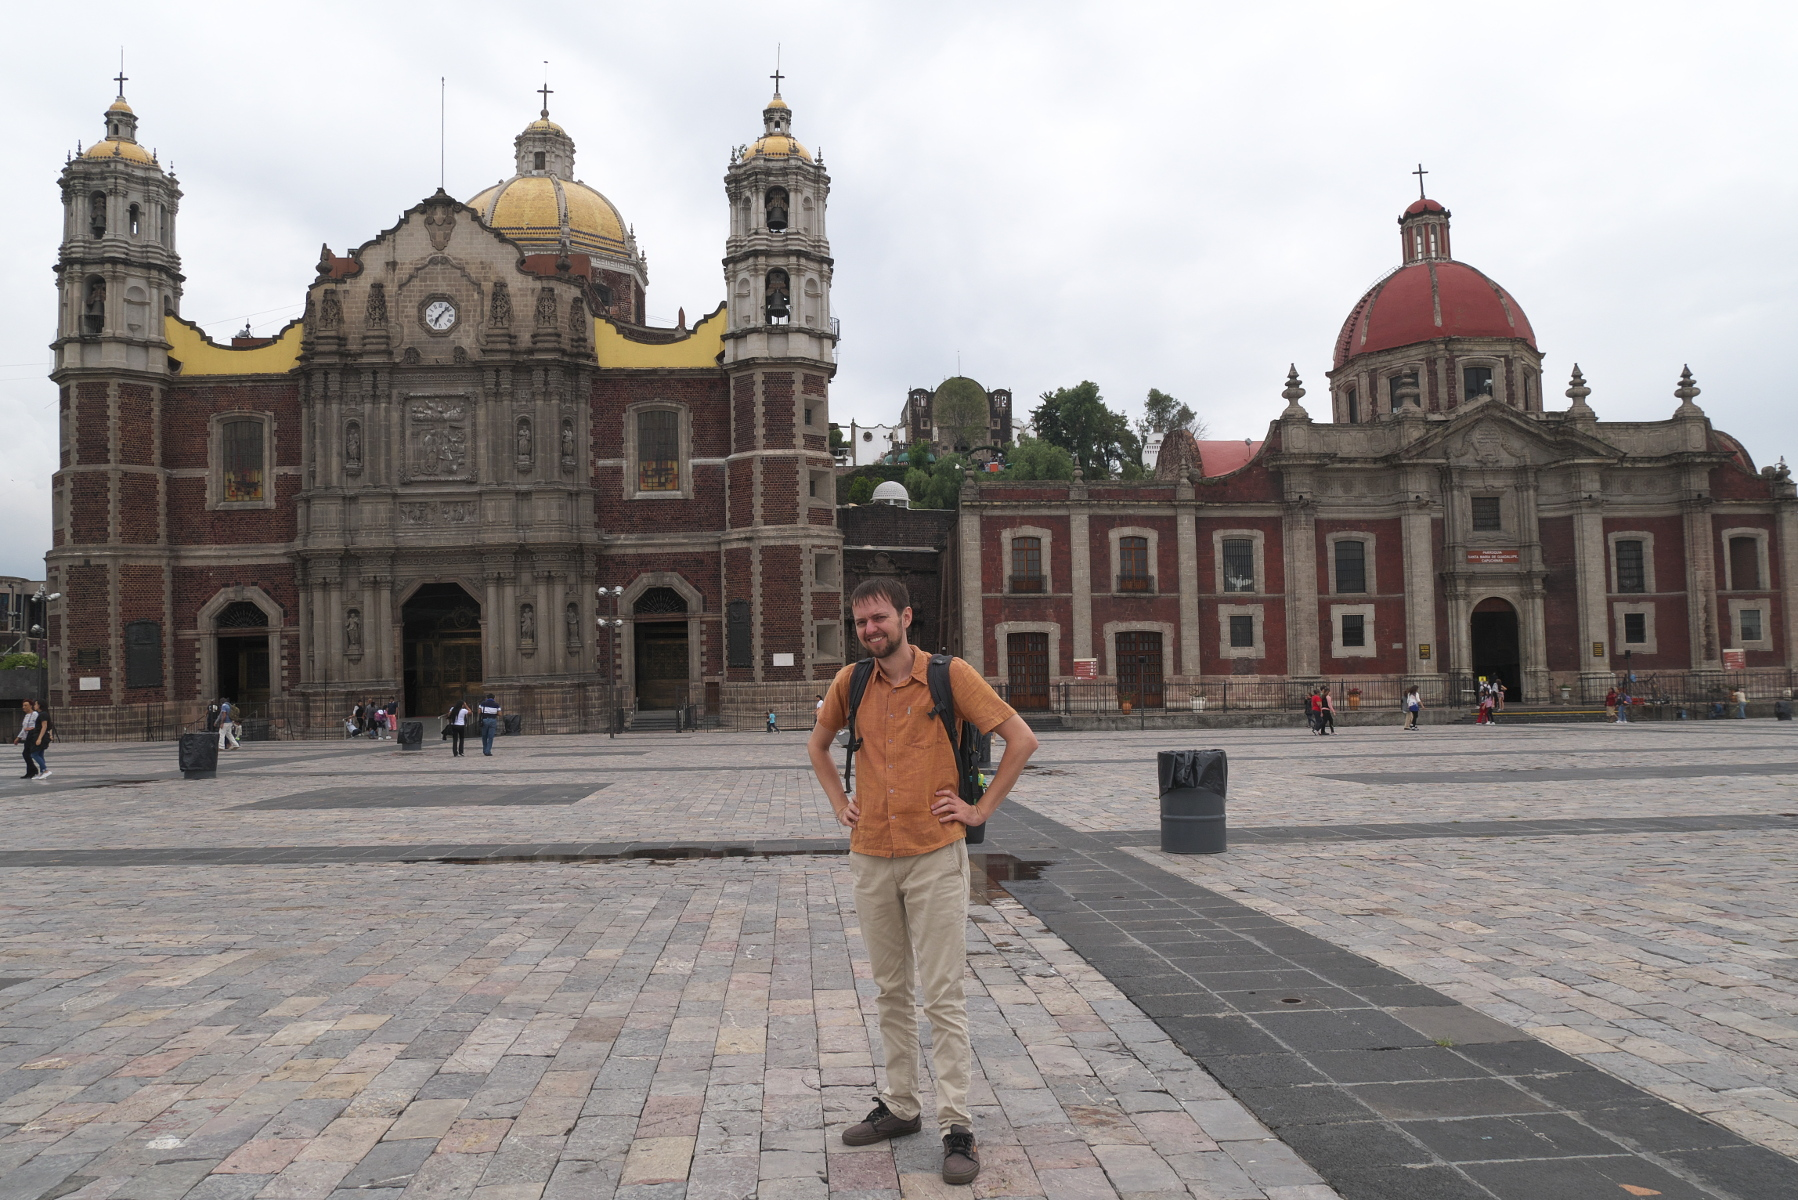 Your blogger in front of the old Basilica of Guadalupe (on the left with the yellow roof). (Photo by Verónica Trinidad Gallegos.)